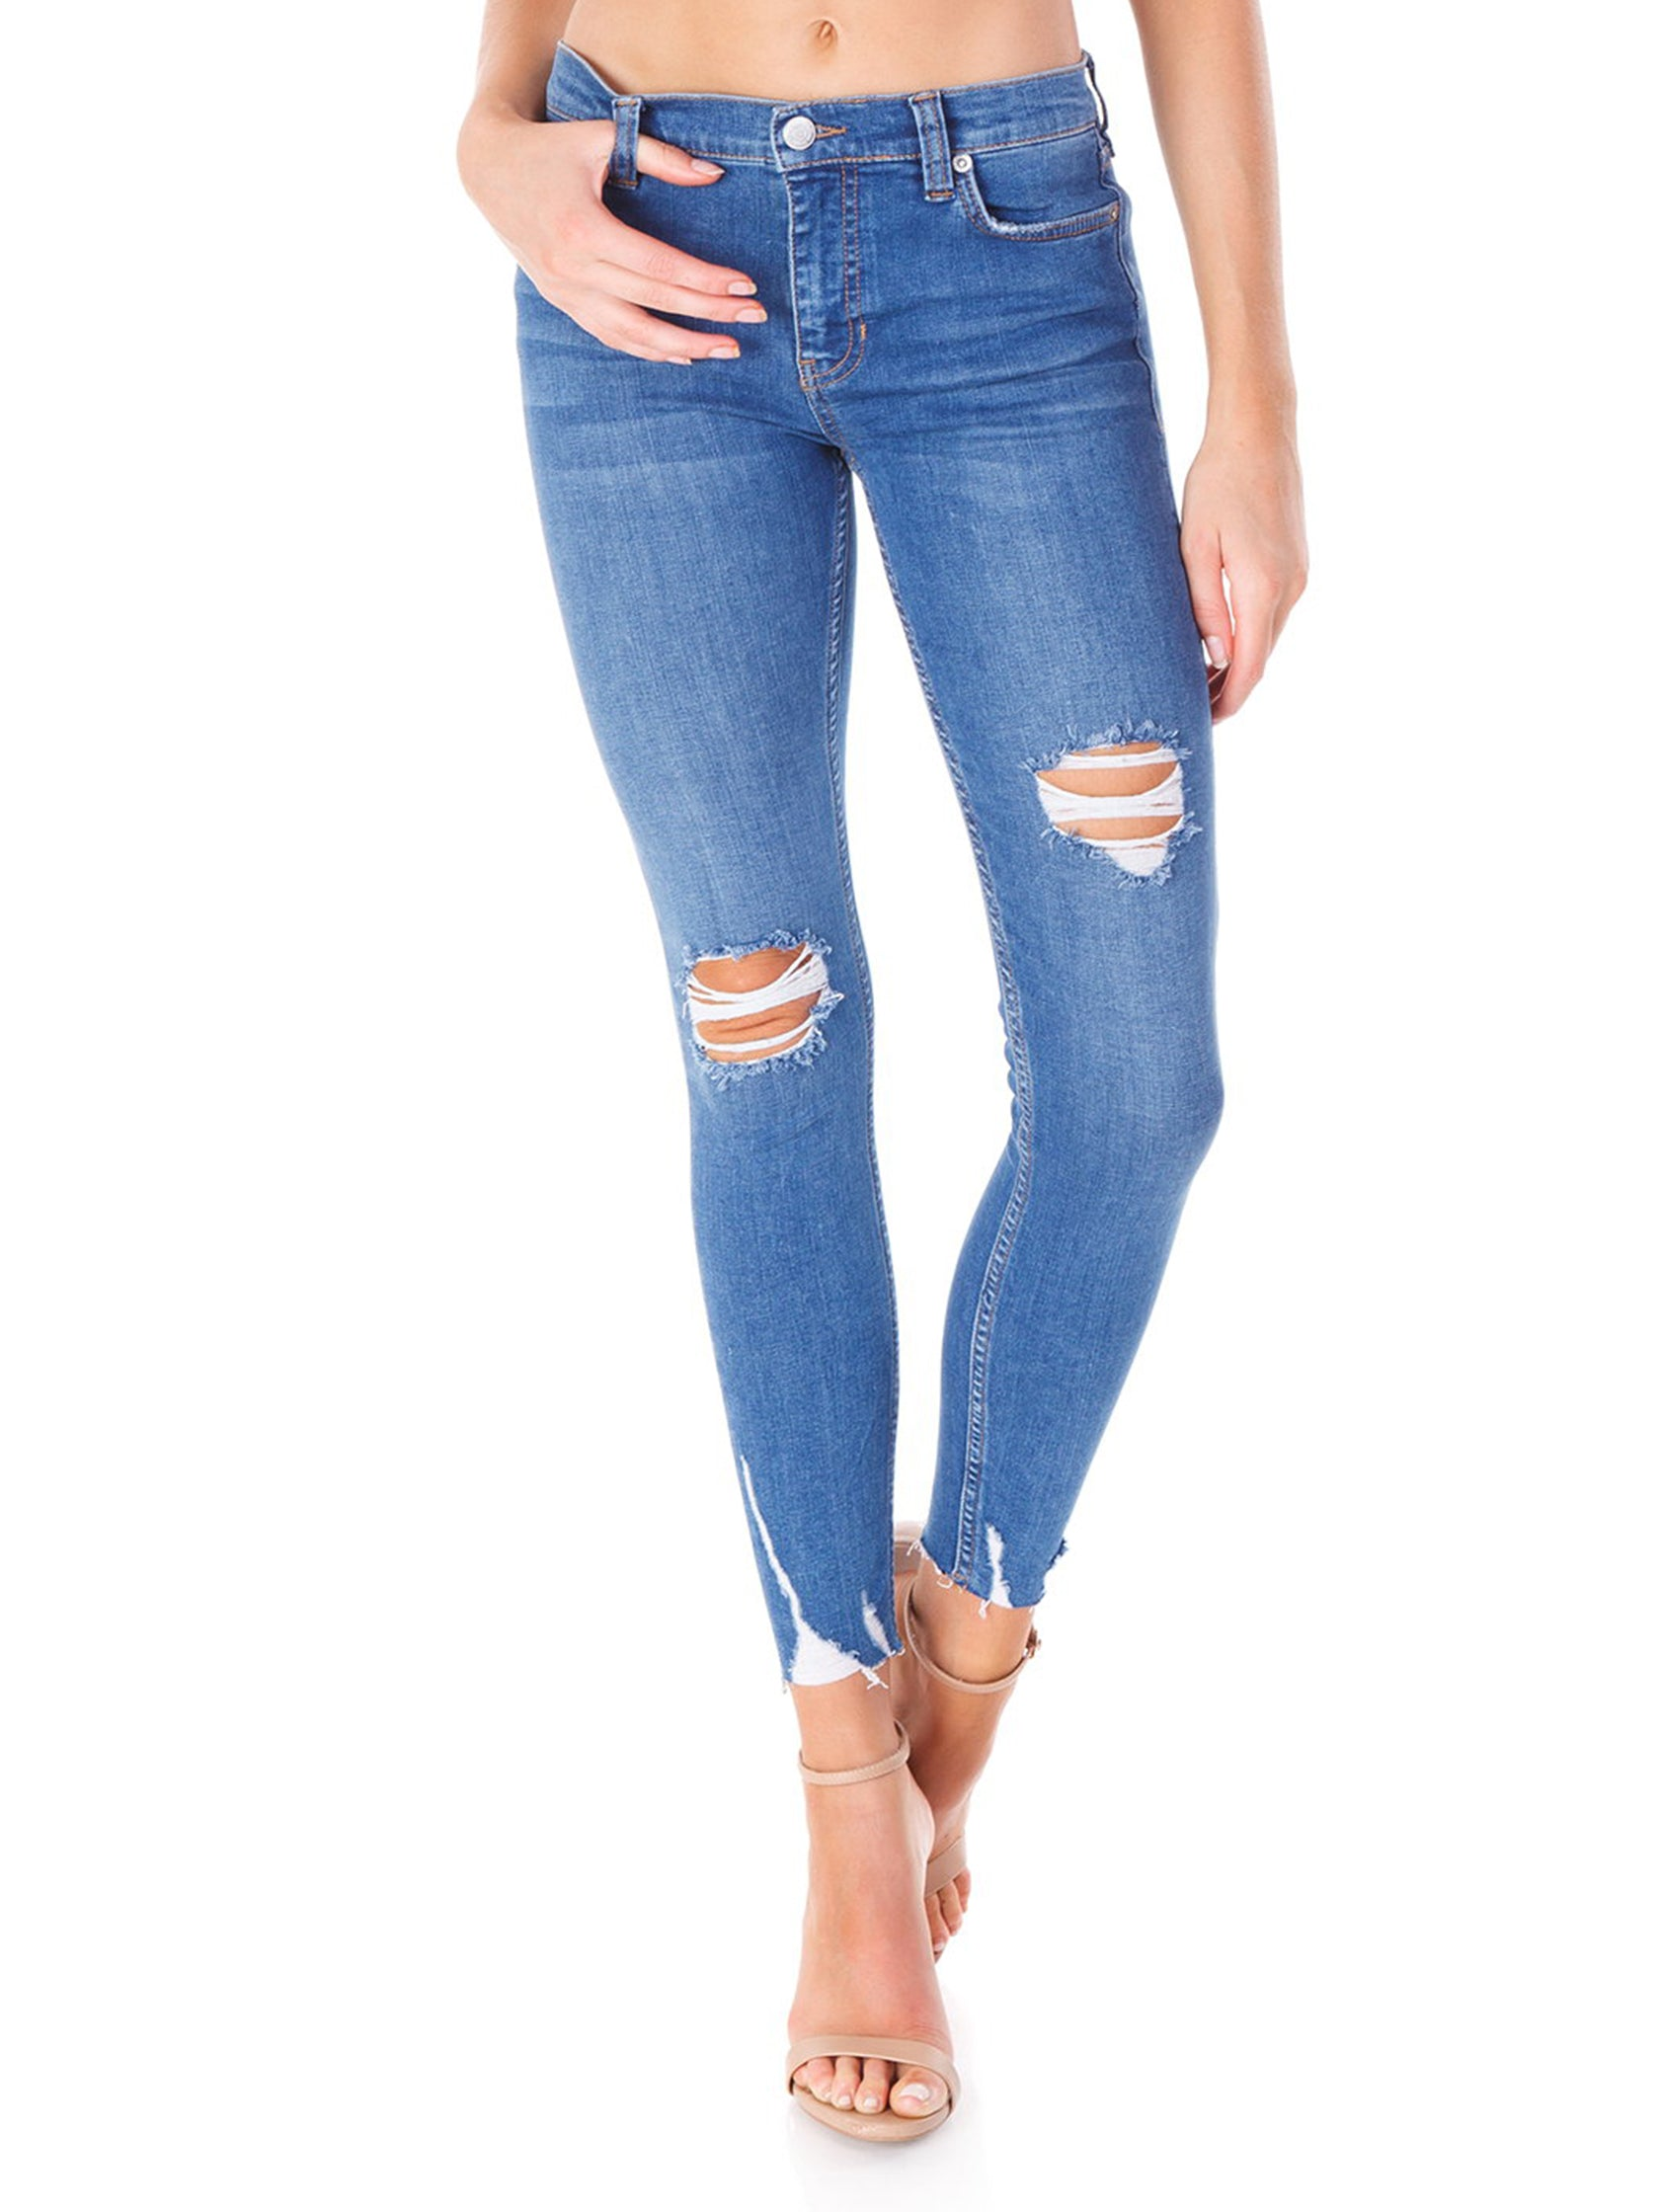 Woman wearing a denim rental from Free People called Shark Bite Jeans